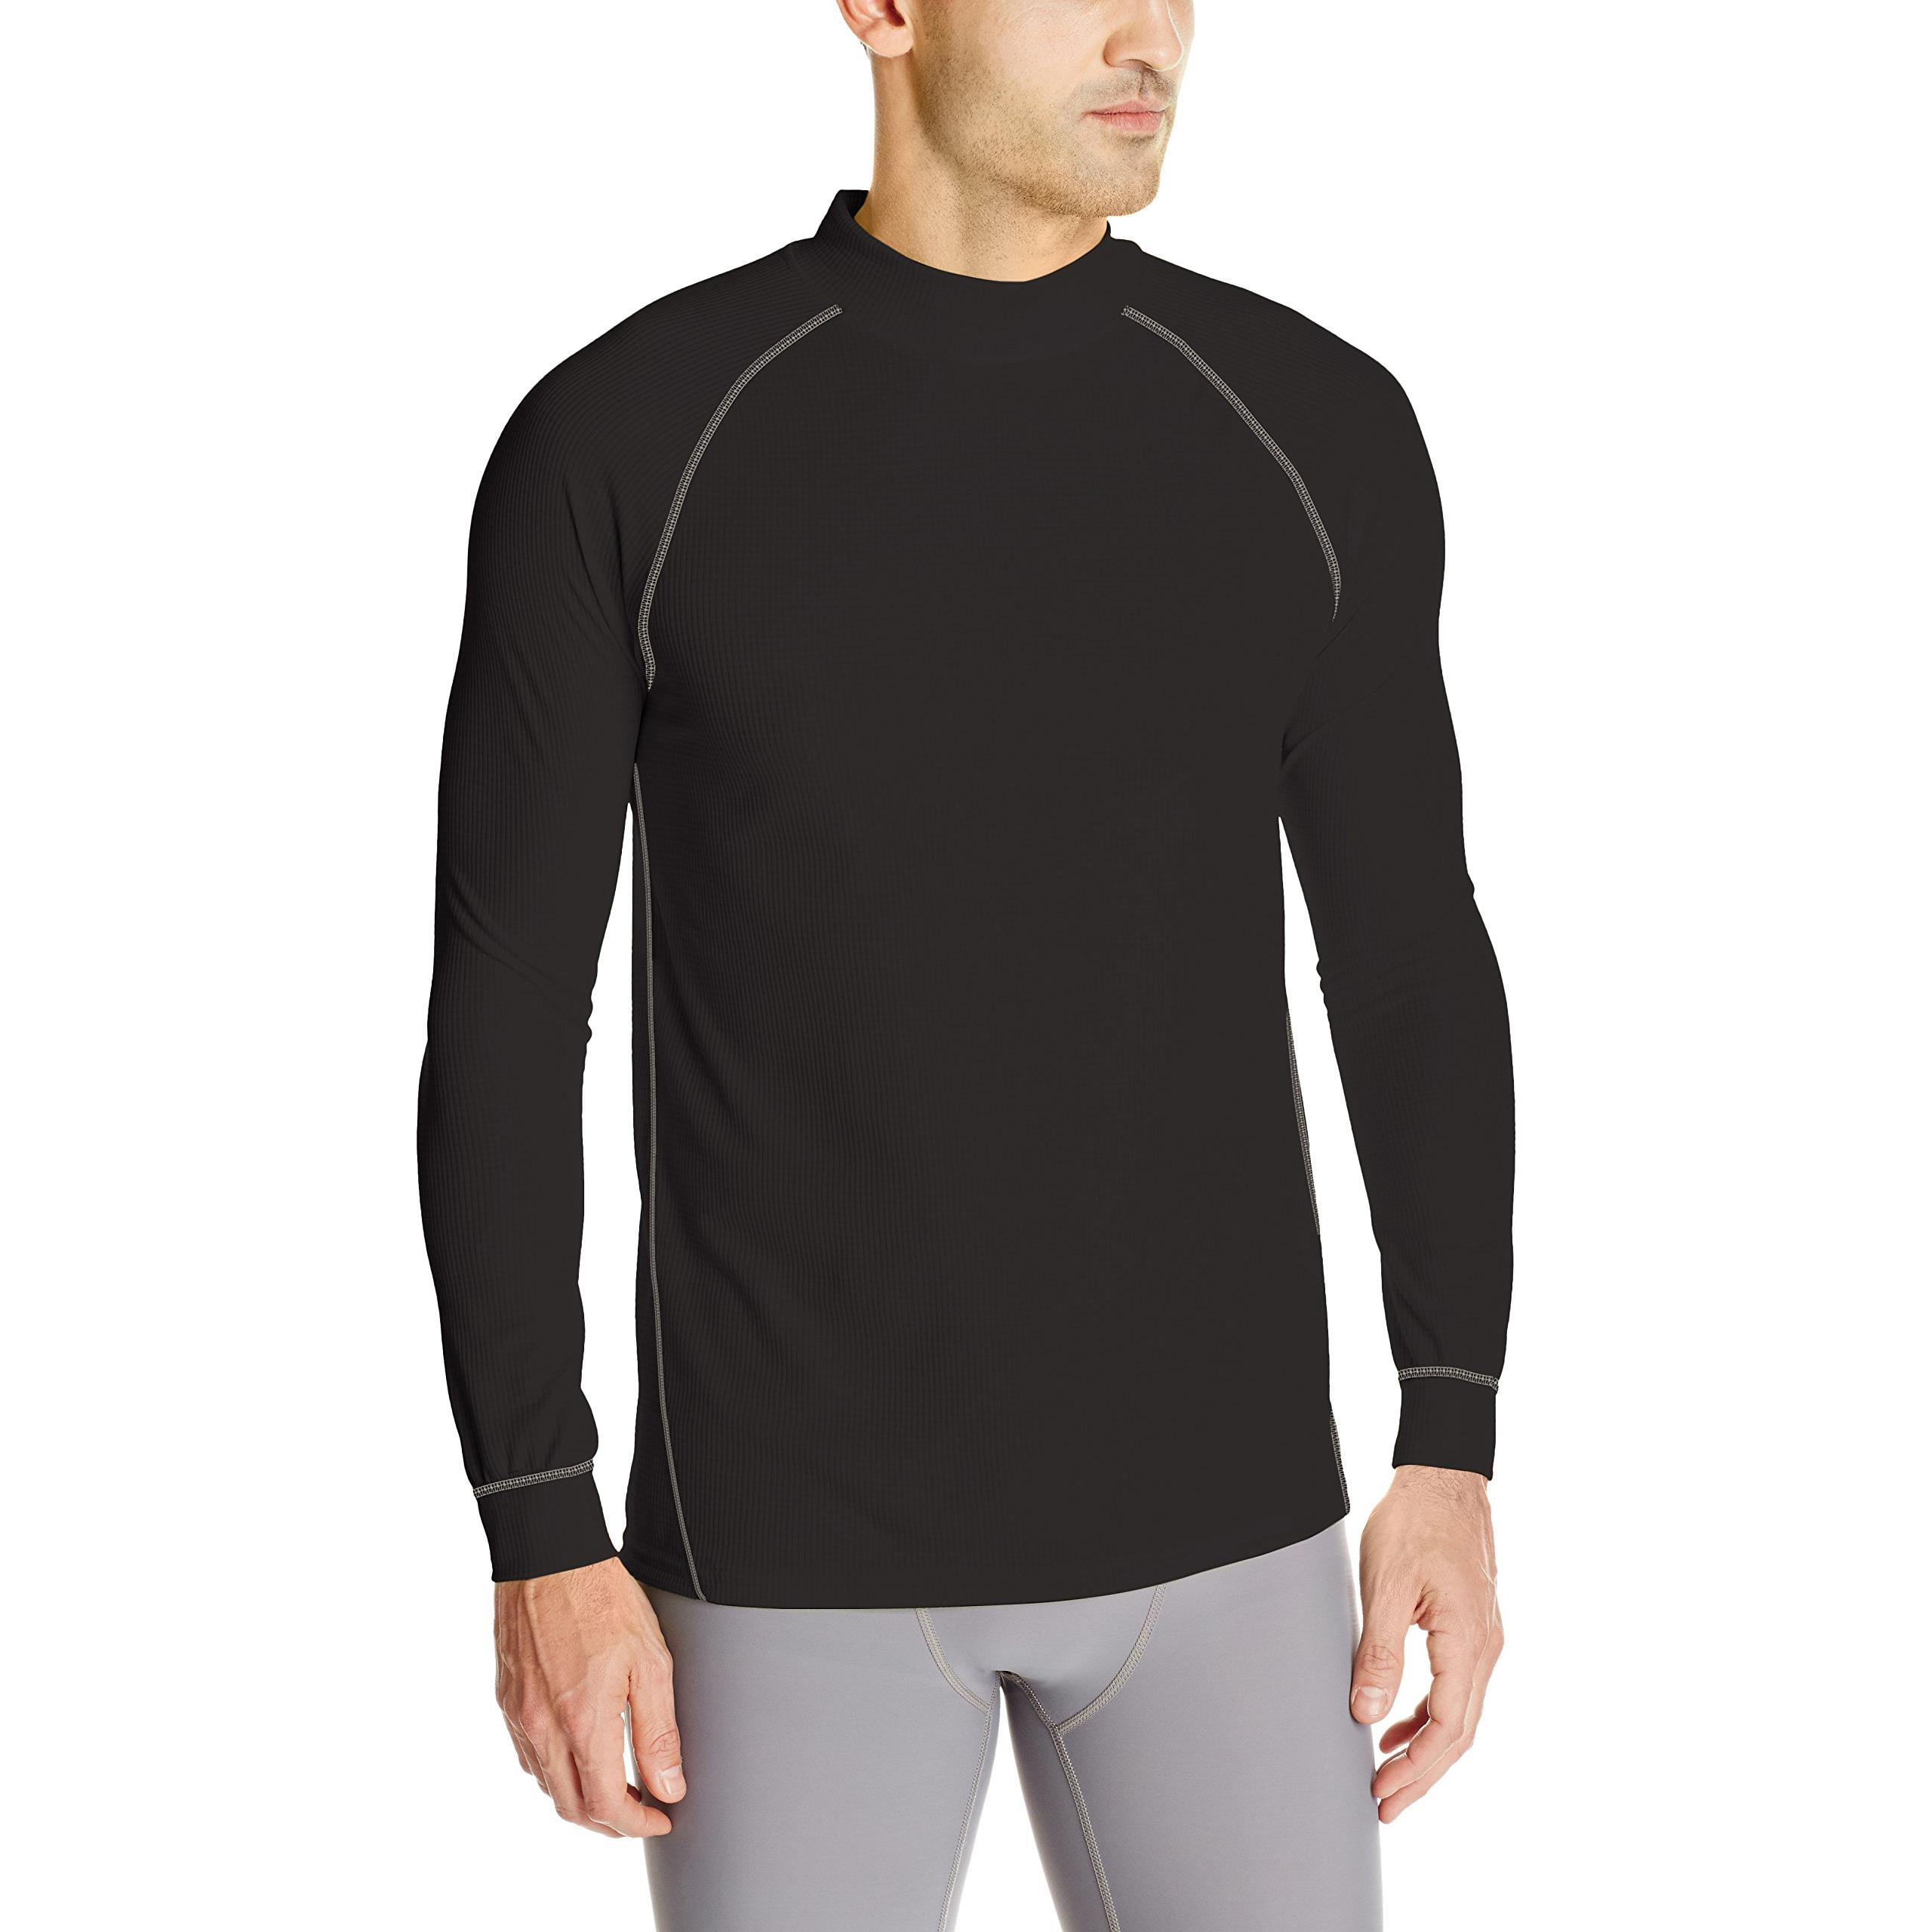 Wolverine Men's Tech Grid Performance Baselayer Long Sleeve Shirt